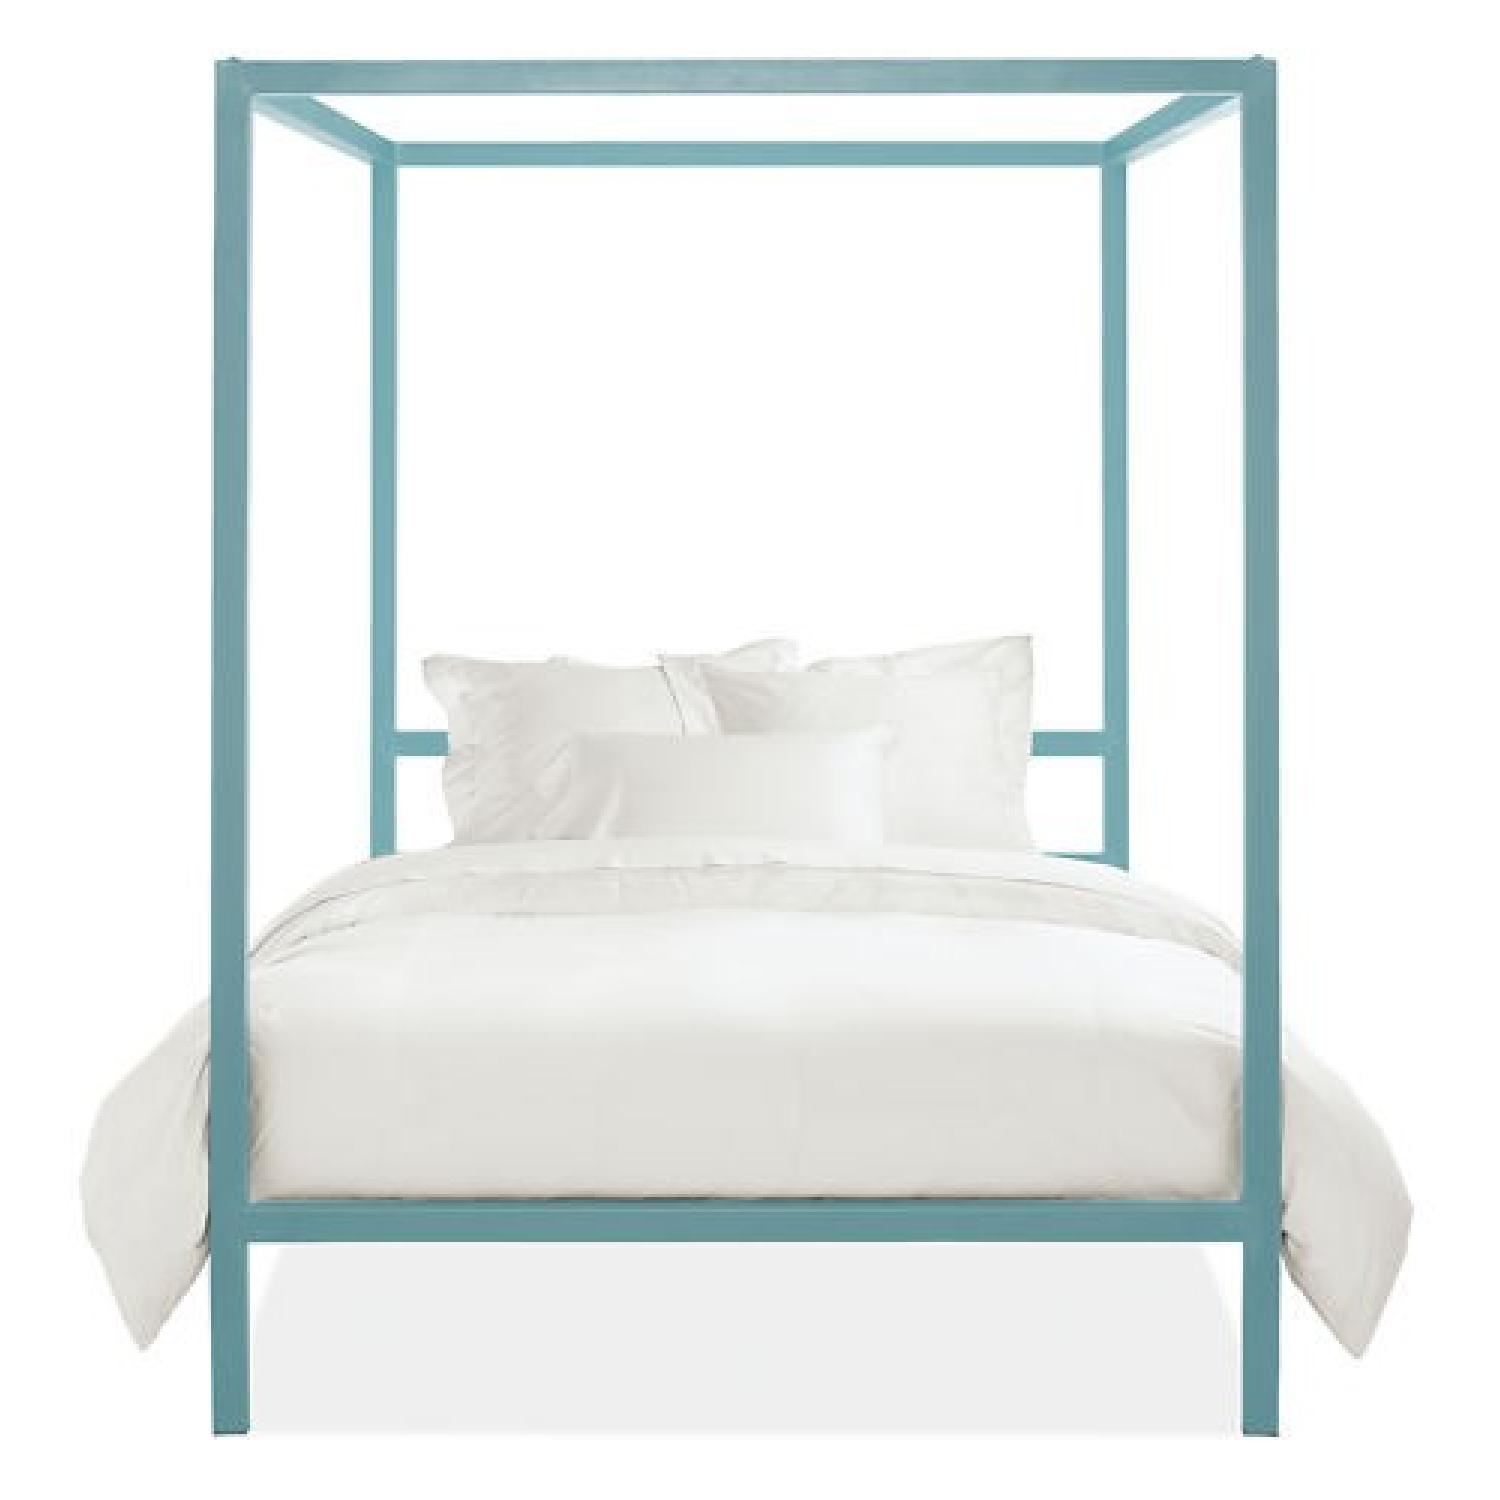 Room & Board King Size Canopy Architecture Bed - image-3